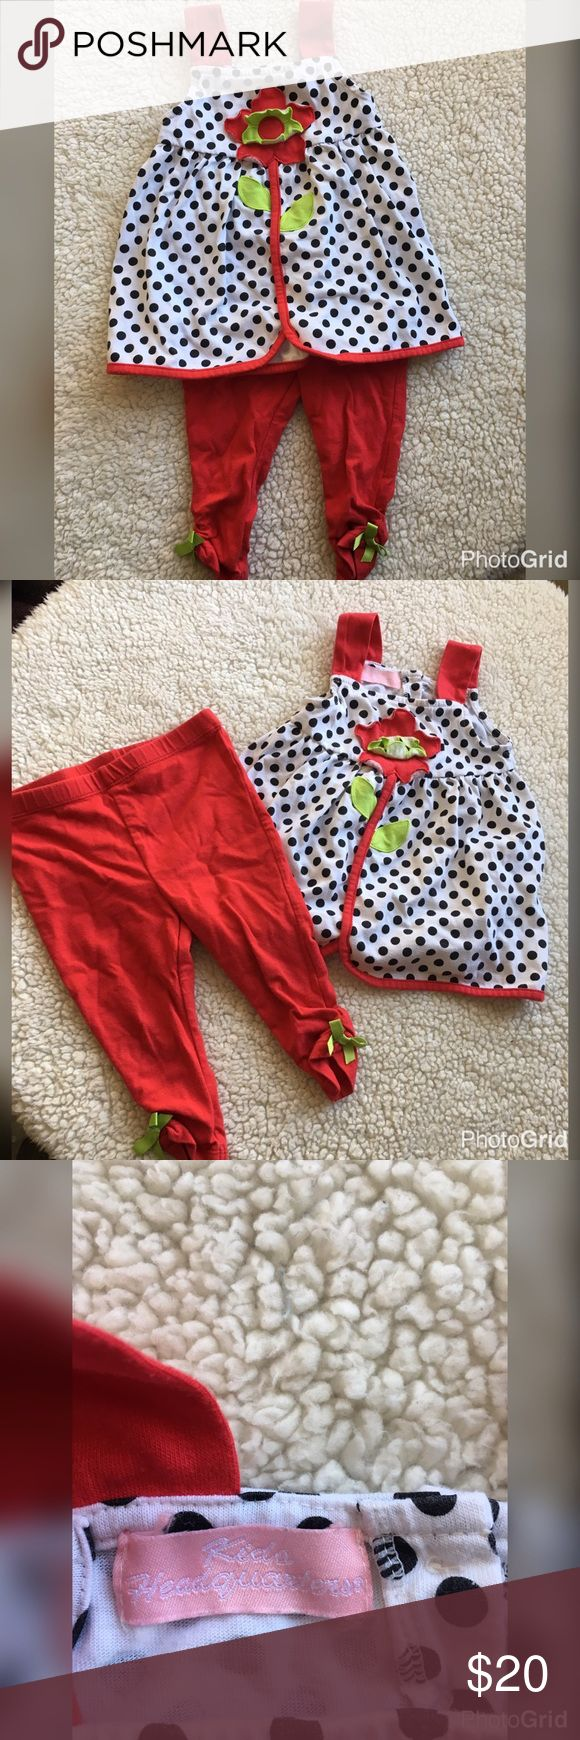 Toddler 2T girl adorable 2 piece set Really cute 2t set by Kids Headquarters. Daughter wore it once and grew out of it. This outfit is so fun and cute. Polka dots and flowers and little red leggings with lime green bows! 👶🏻🌹 Kids Headquarters Matching Sets